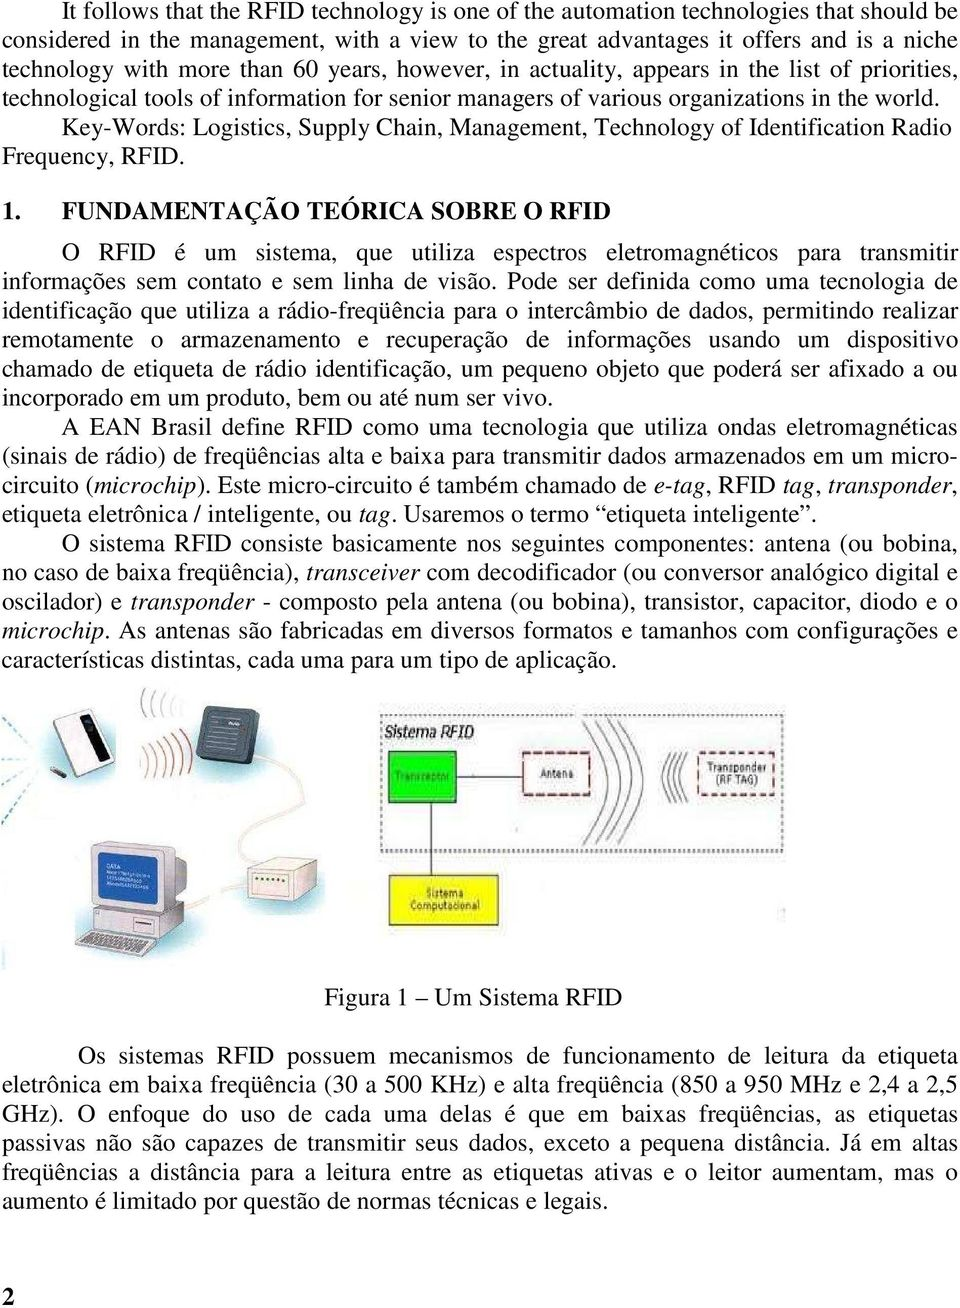 Key-Words: Logistics, Supply Chain, Management, Technology of Identification Radio Frequency, RFID. 1.